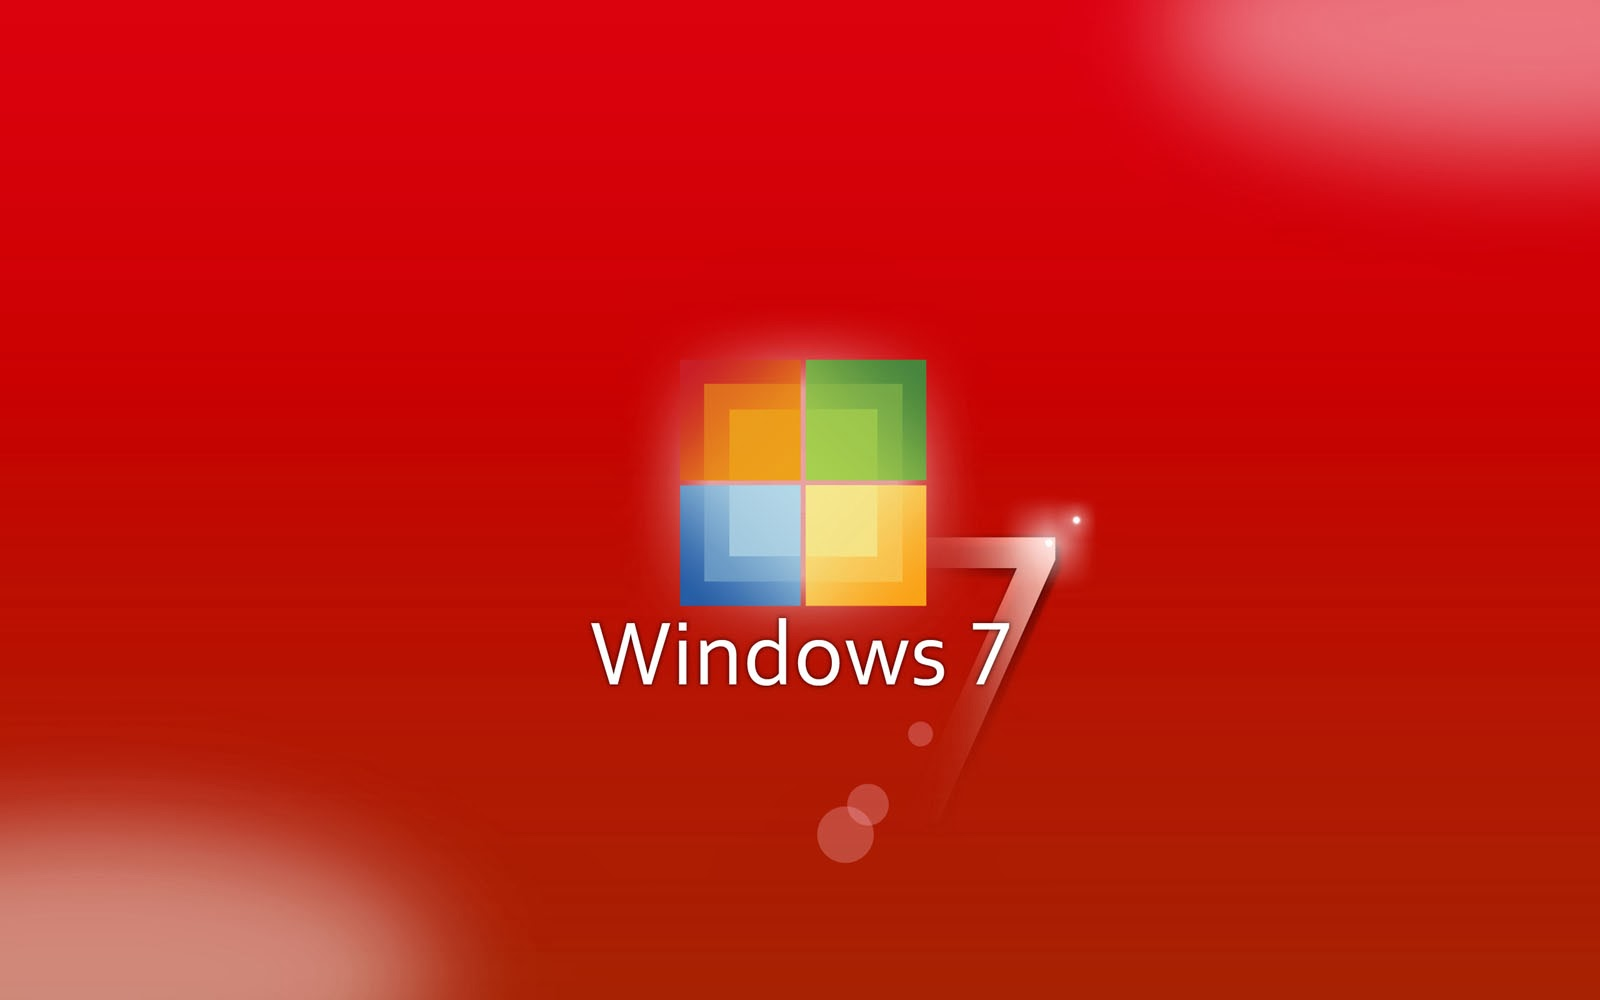 3d Wallpapers Blue Theme Wallpaper Wallpapers Windows 7 Red Wallpapers